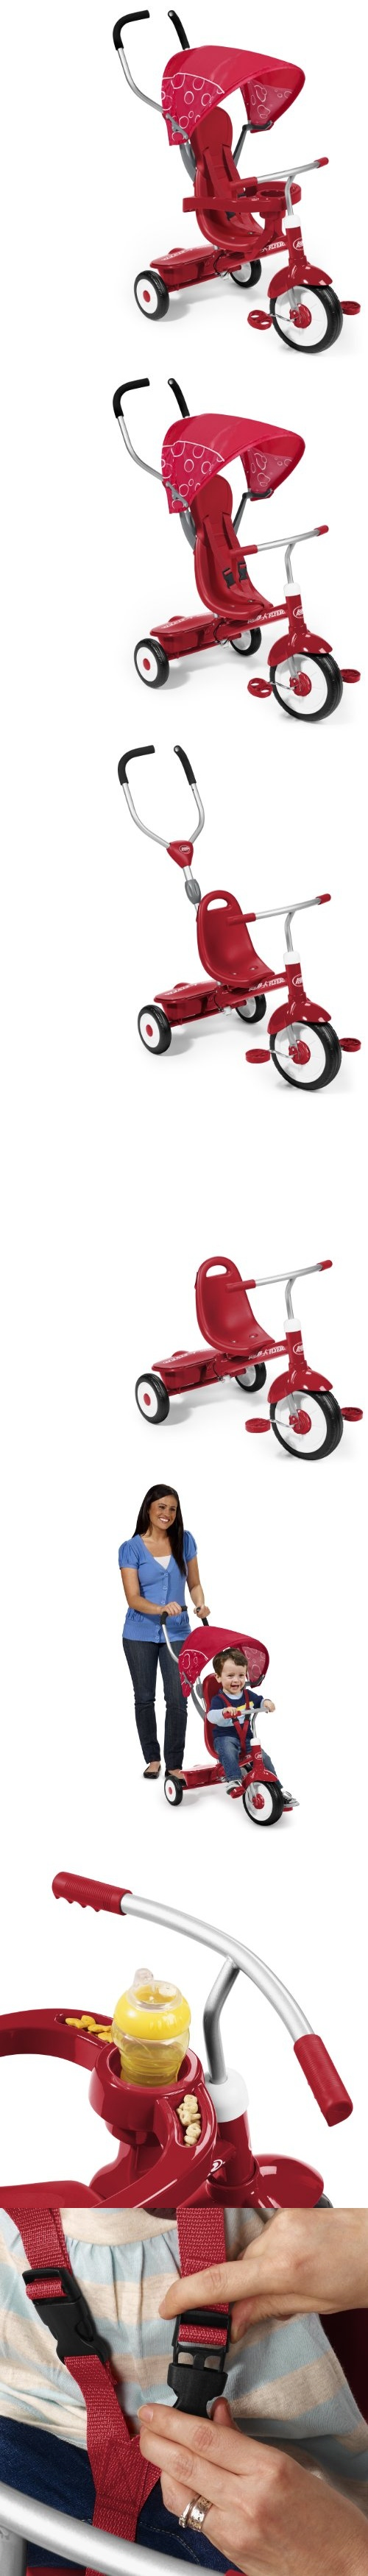 Radio Flyer 4-in-1 Trike Red -  Radio Flyer 4-in-1 Trike Radio Flyer 4-in-1 Trike can provide children with endless riding fun. This 4-in-1 trike has the ability to convert from a stroller to a steering trike, learning-to-ride trik... - Kids' Tricycles - Toys$86.33